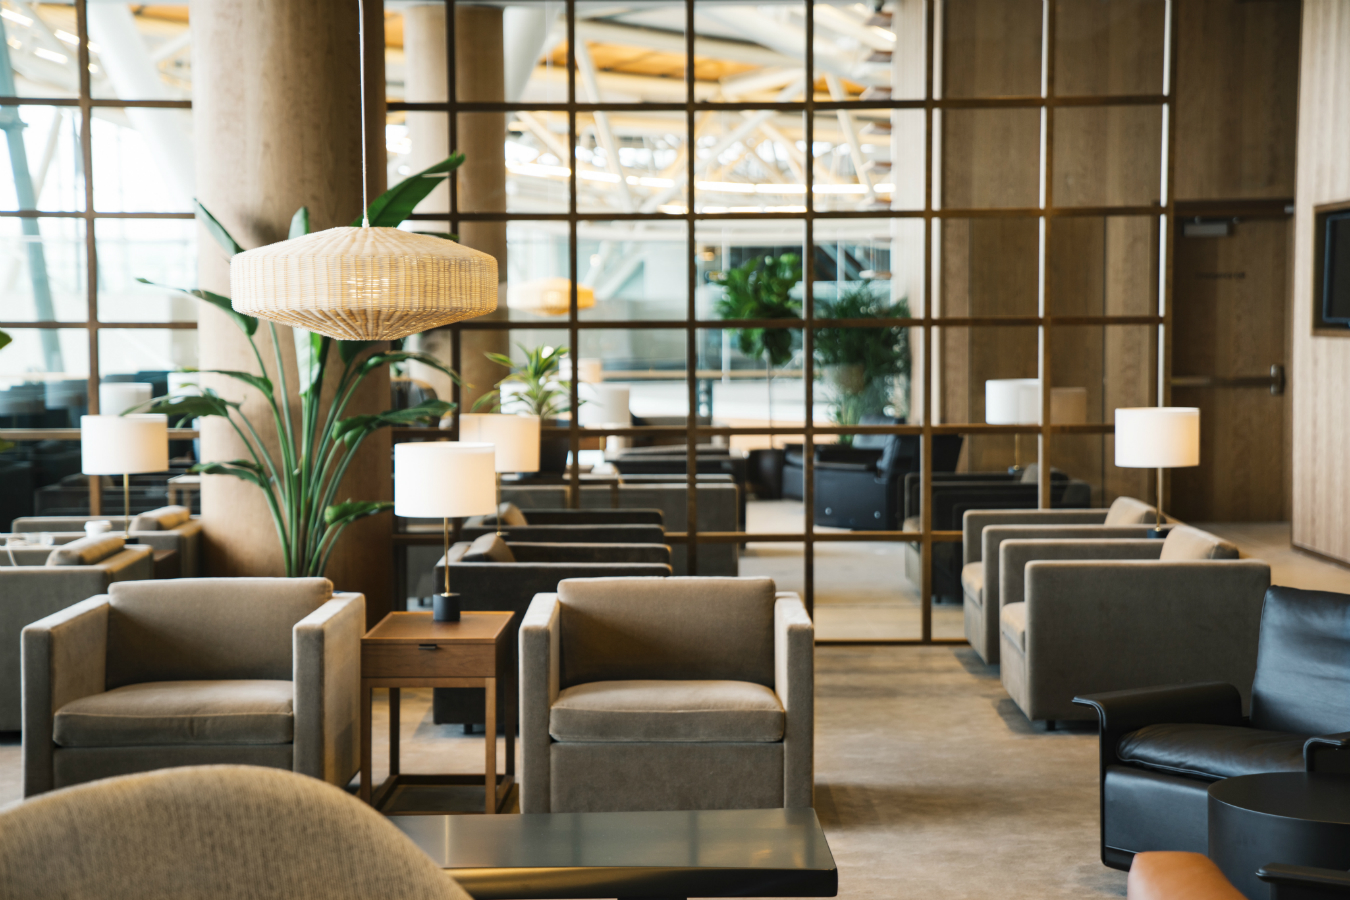 Daily Edit: The Cathay Pacific Way